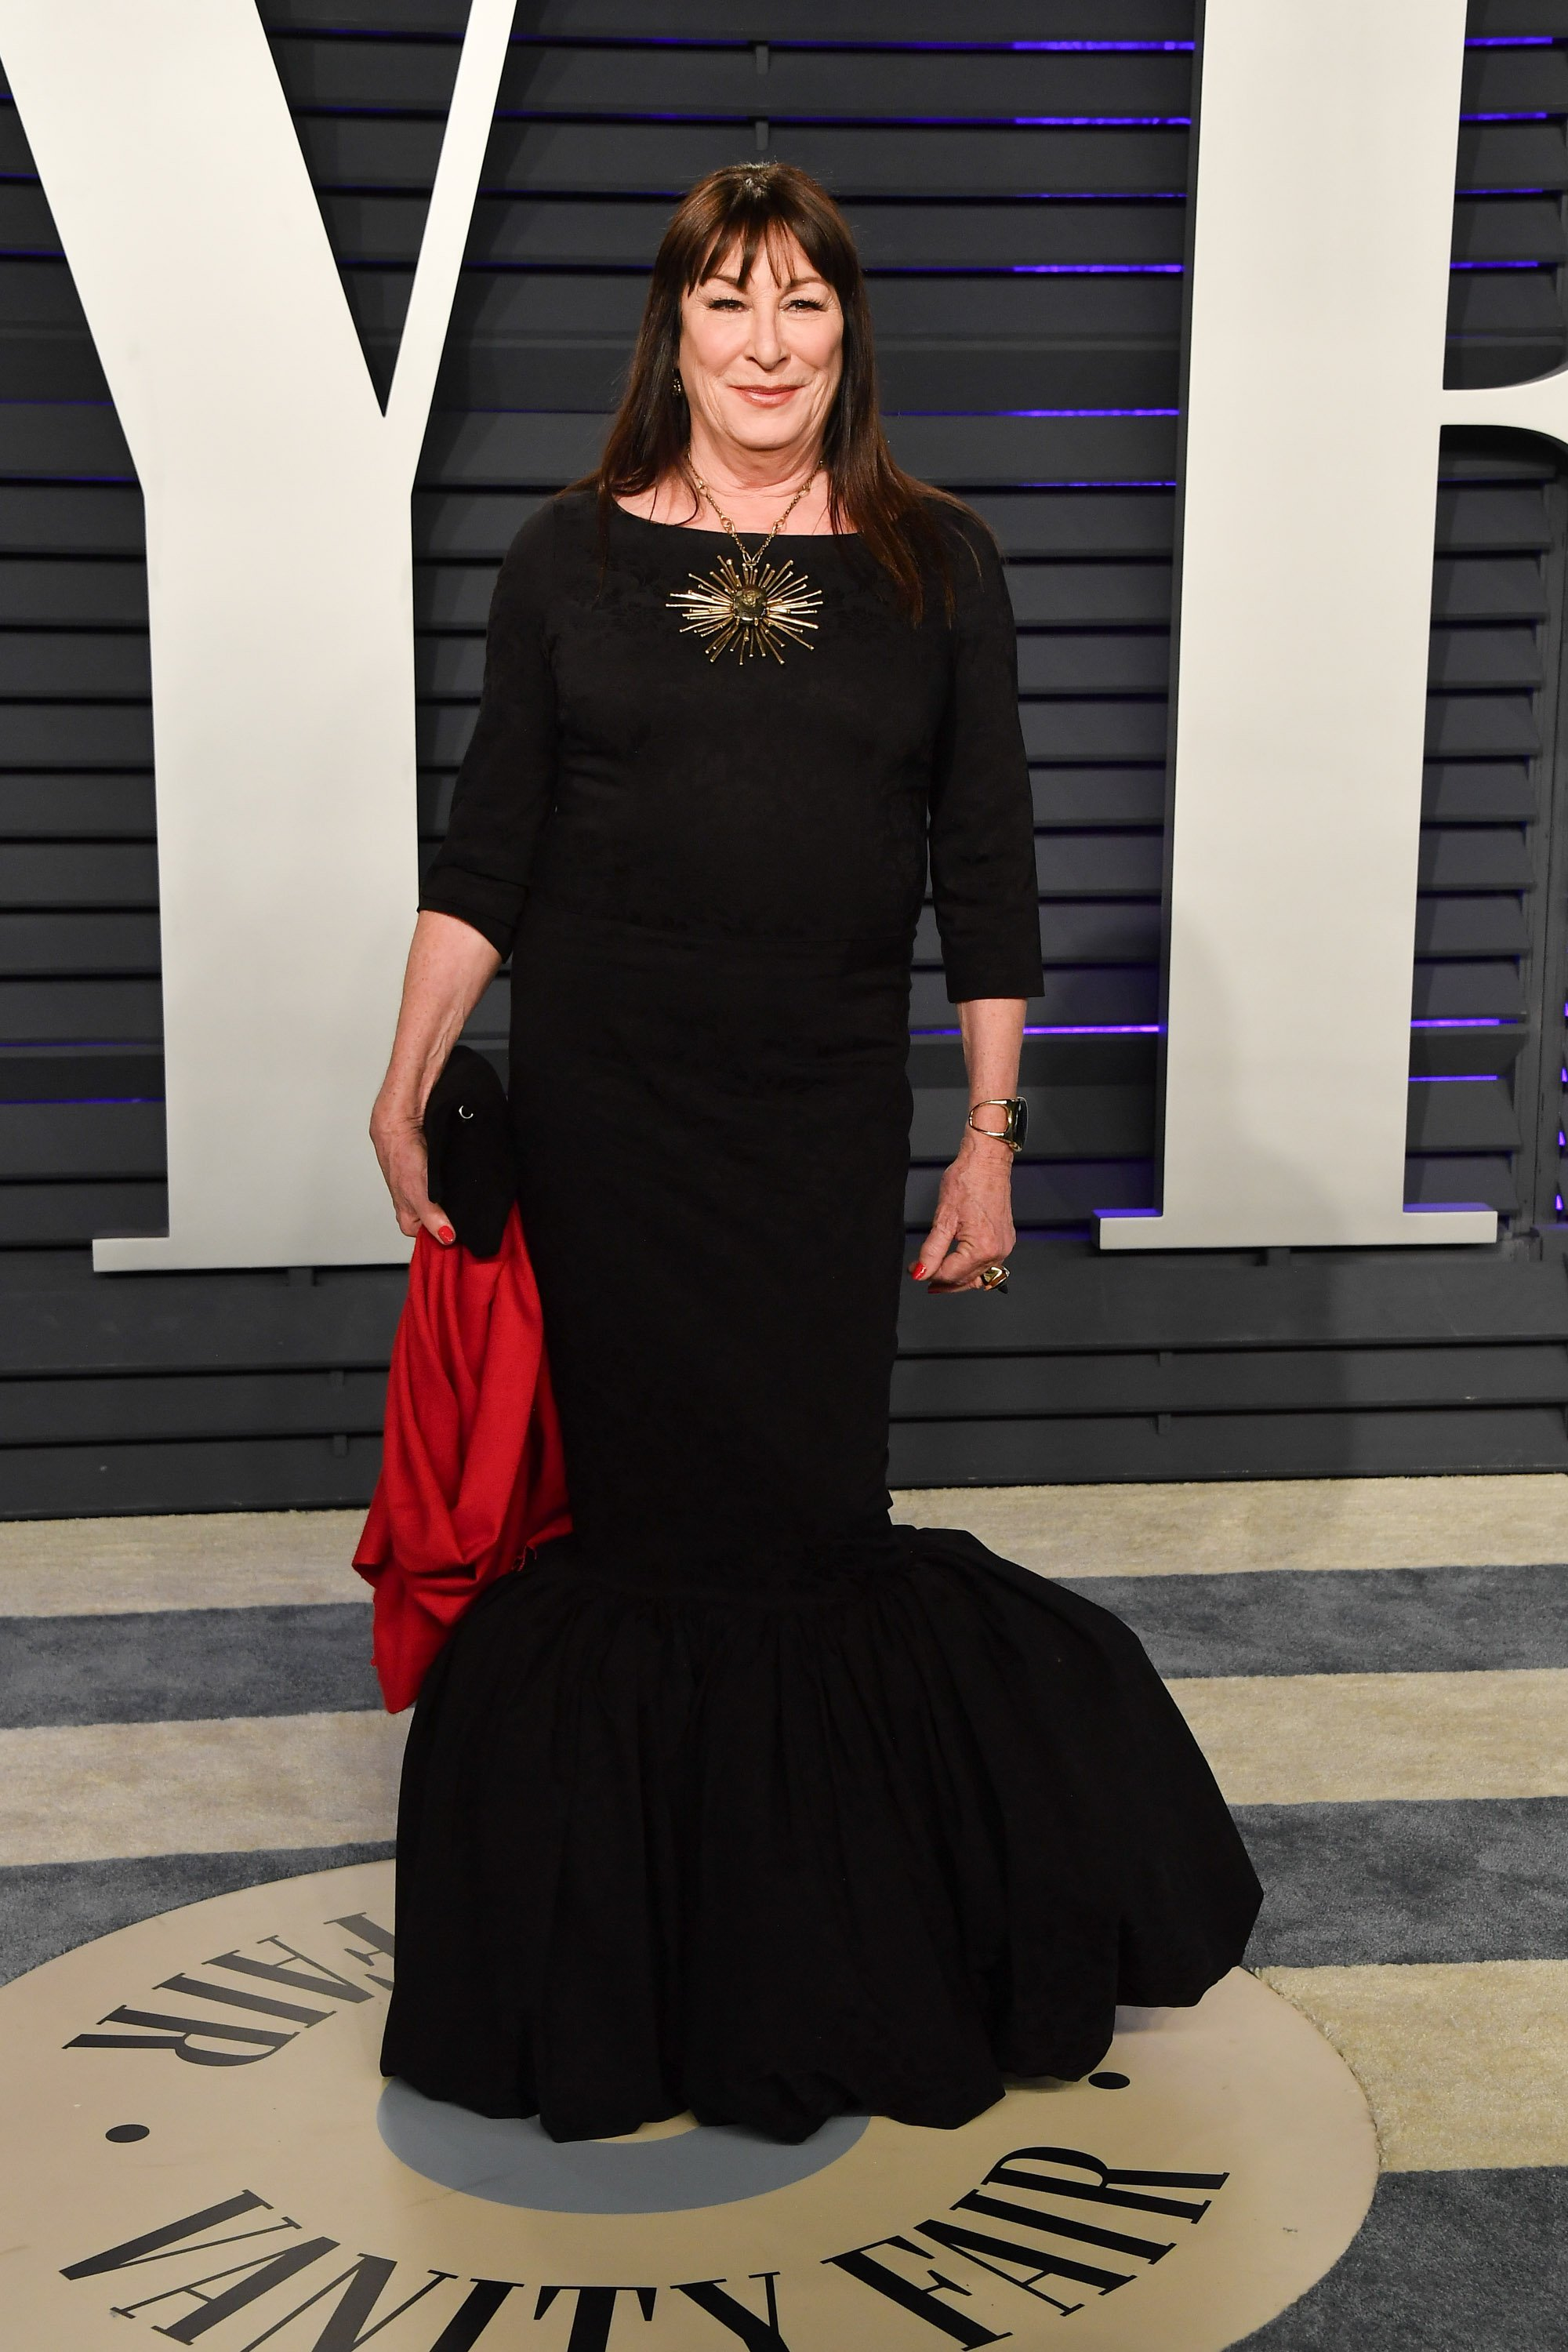 Getty Images l Anjelica Huston at the 2019 Vanity Fair Oscar Party hosted by Radhika Jones on February 24, 2019 in Beverly Hills, California